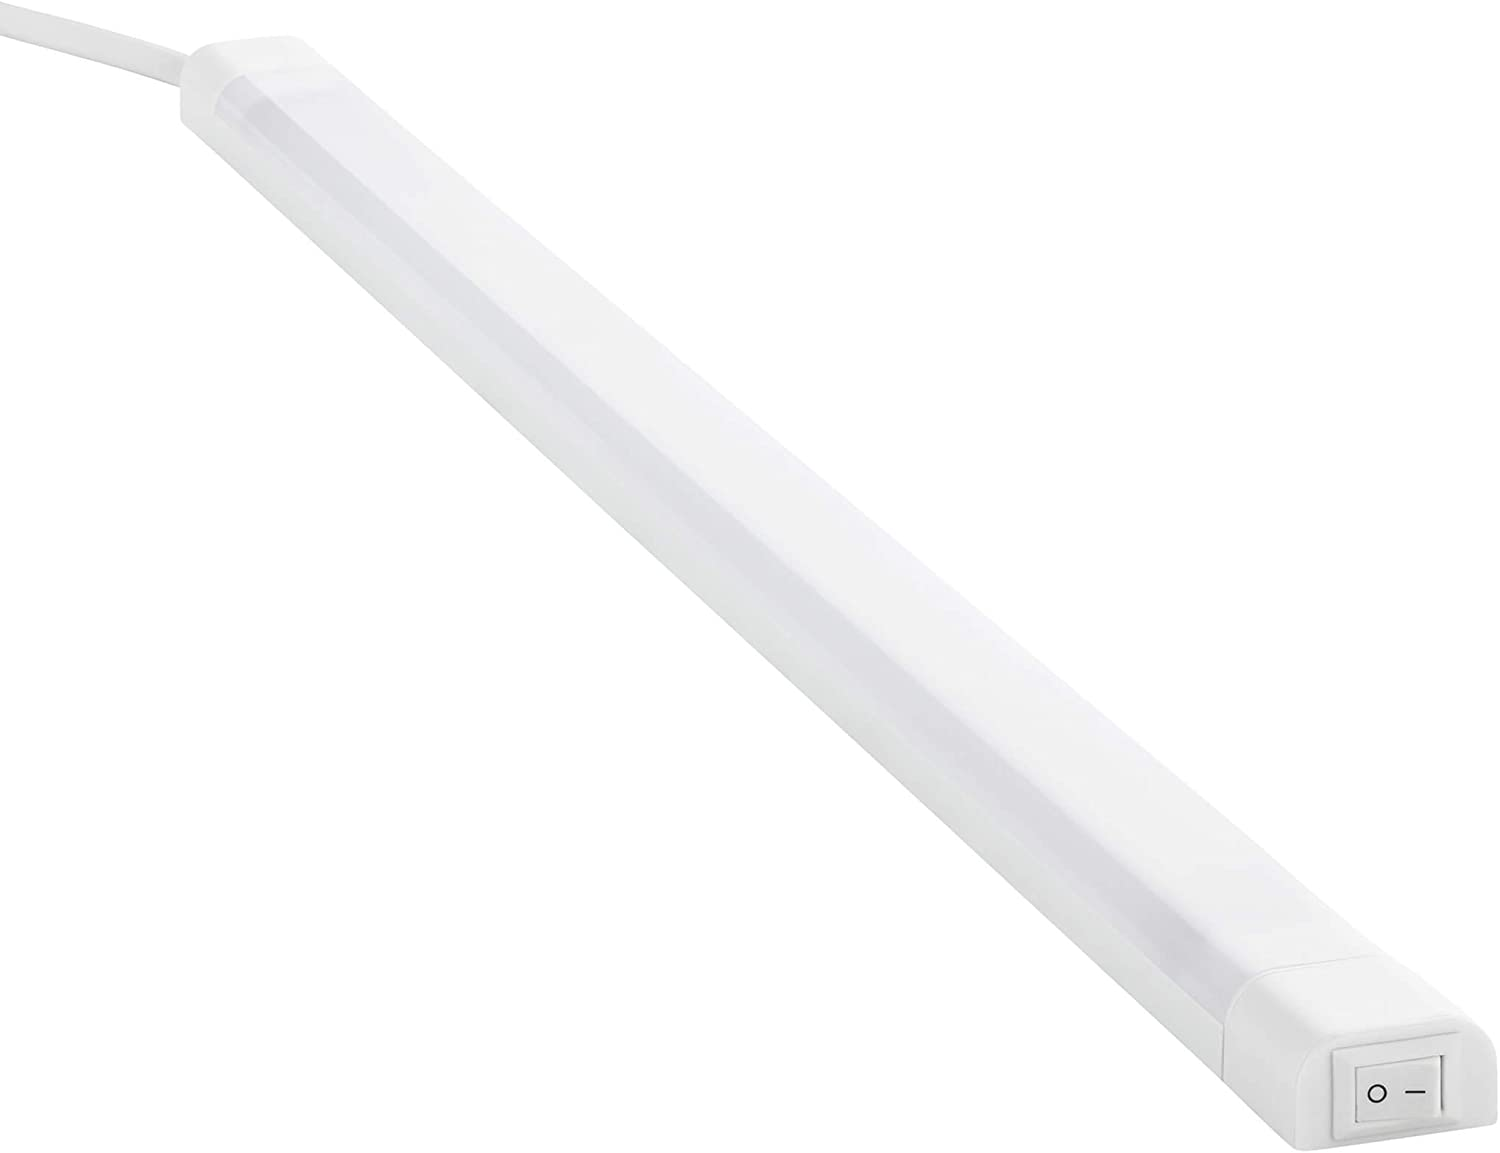 SEBSON® LED bajo mueble 50cm, Tiras de luz con enchufe e interruptor, blanco neutro 4000K, 4W Equivale de 25W, 560 Lumen, 230V, IP20, 24x13x500mm